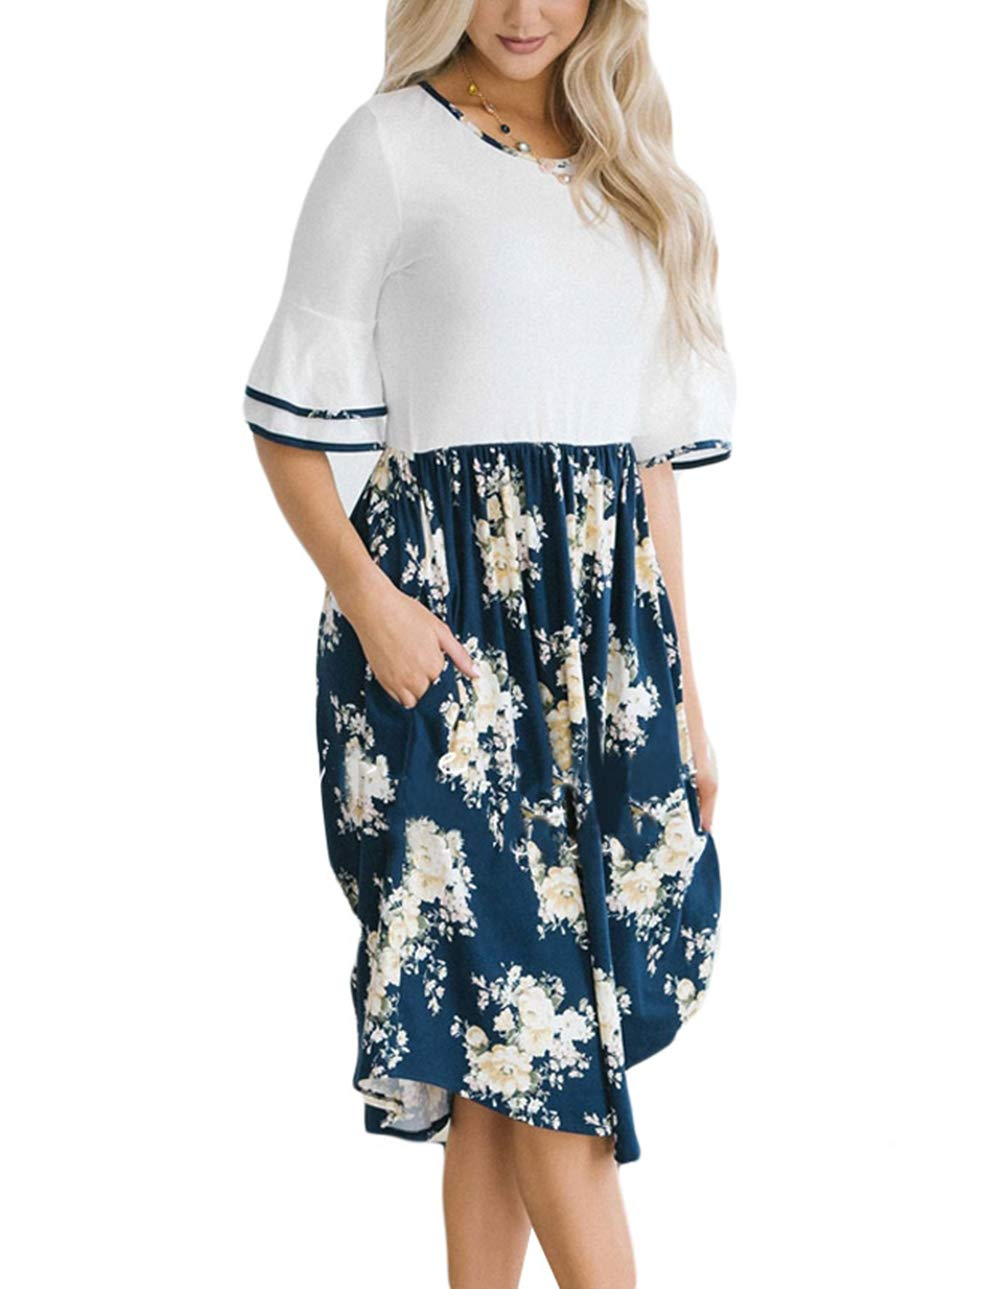 9ba51b8a926 JOSIFER Women s Casual Tshirt Midi Swing Dresses Cute Tunic Loose Dress  with Pockets White Floral